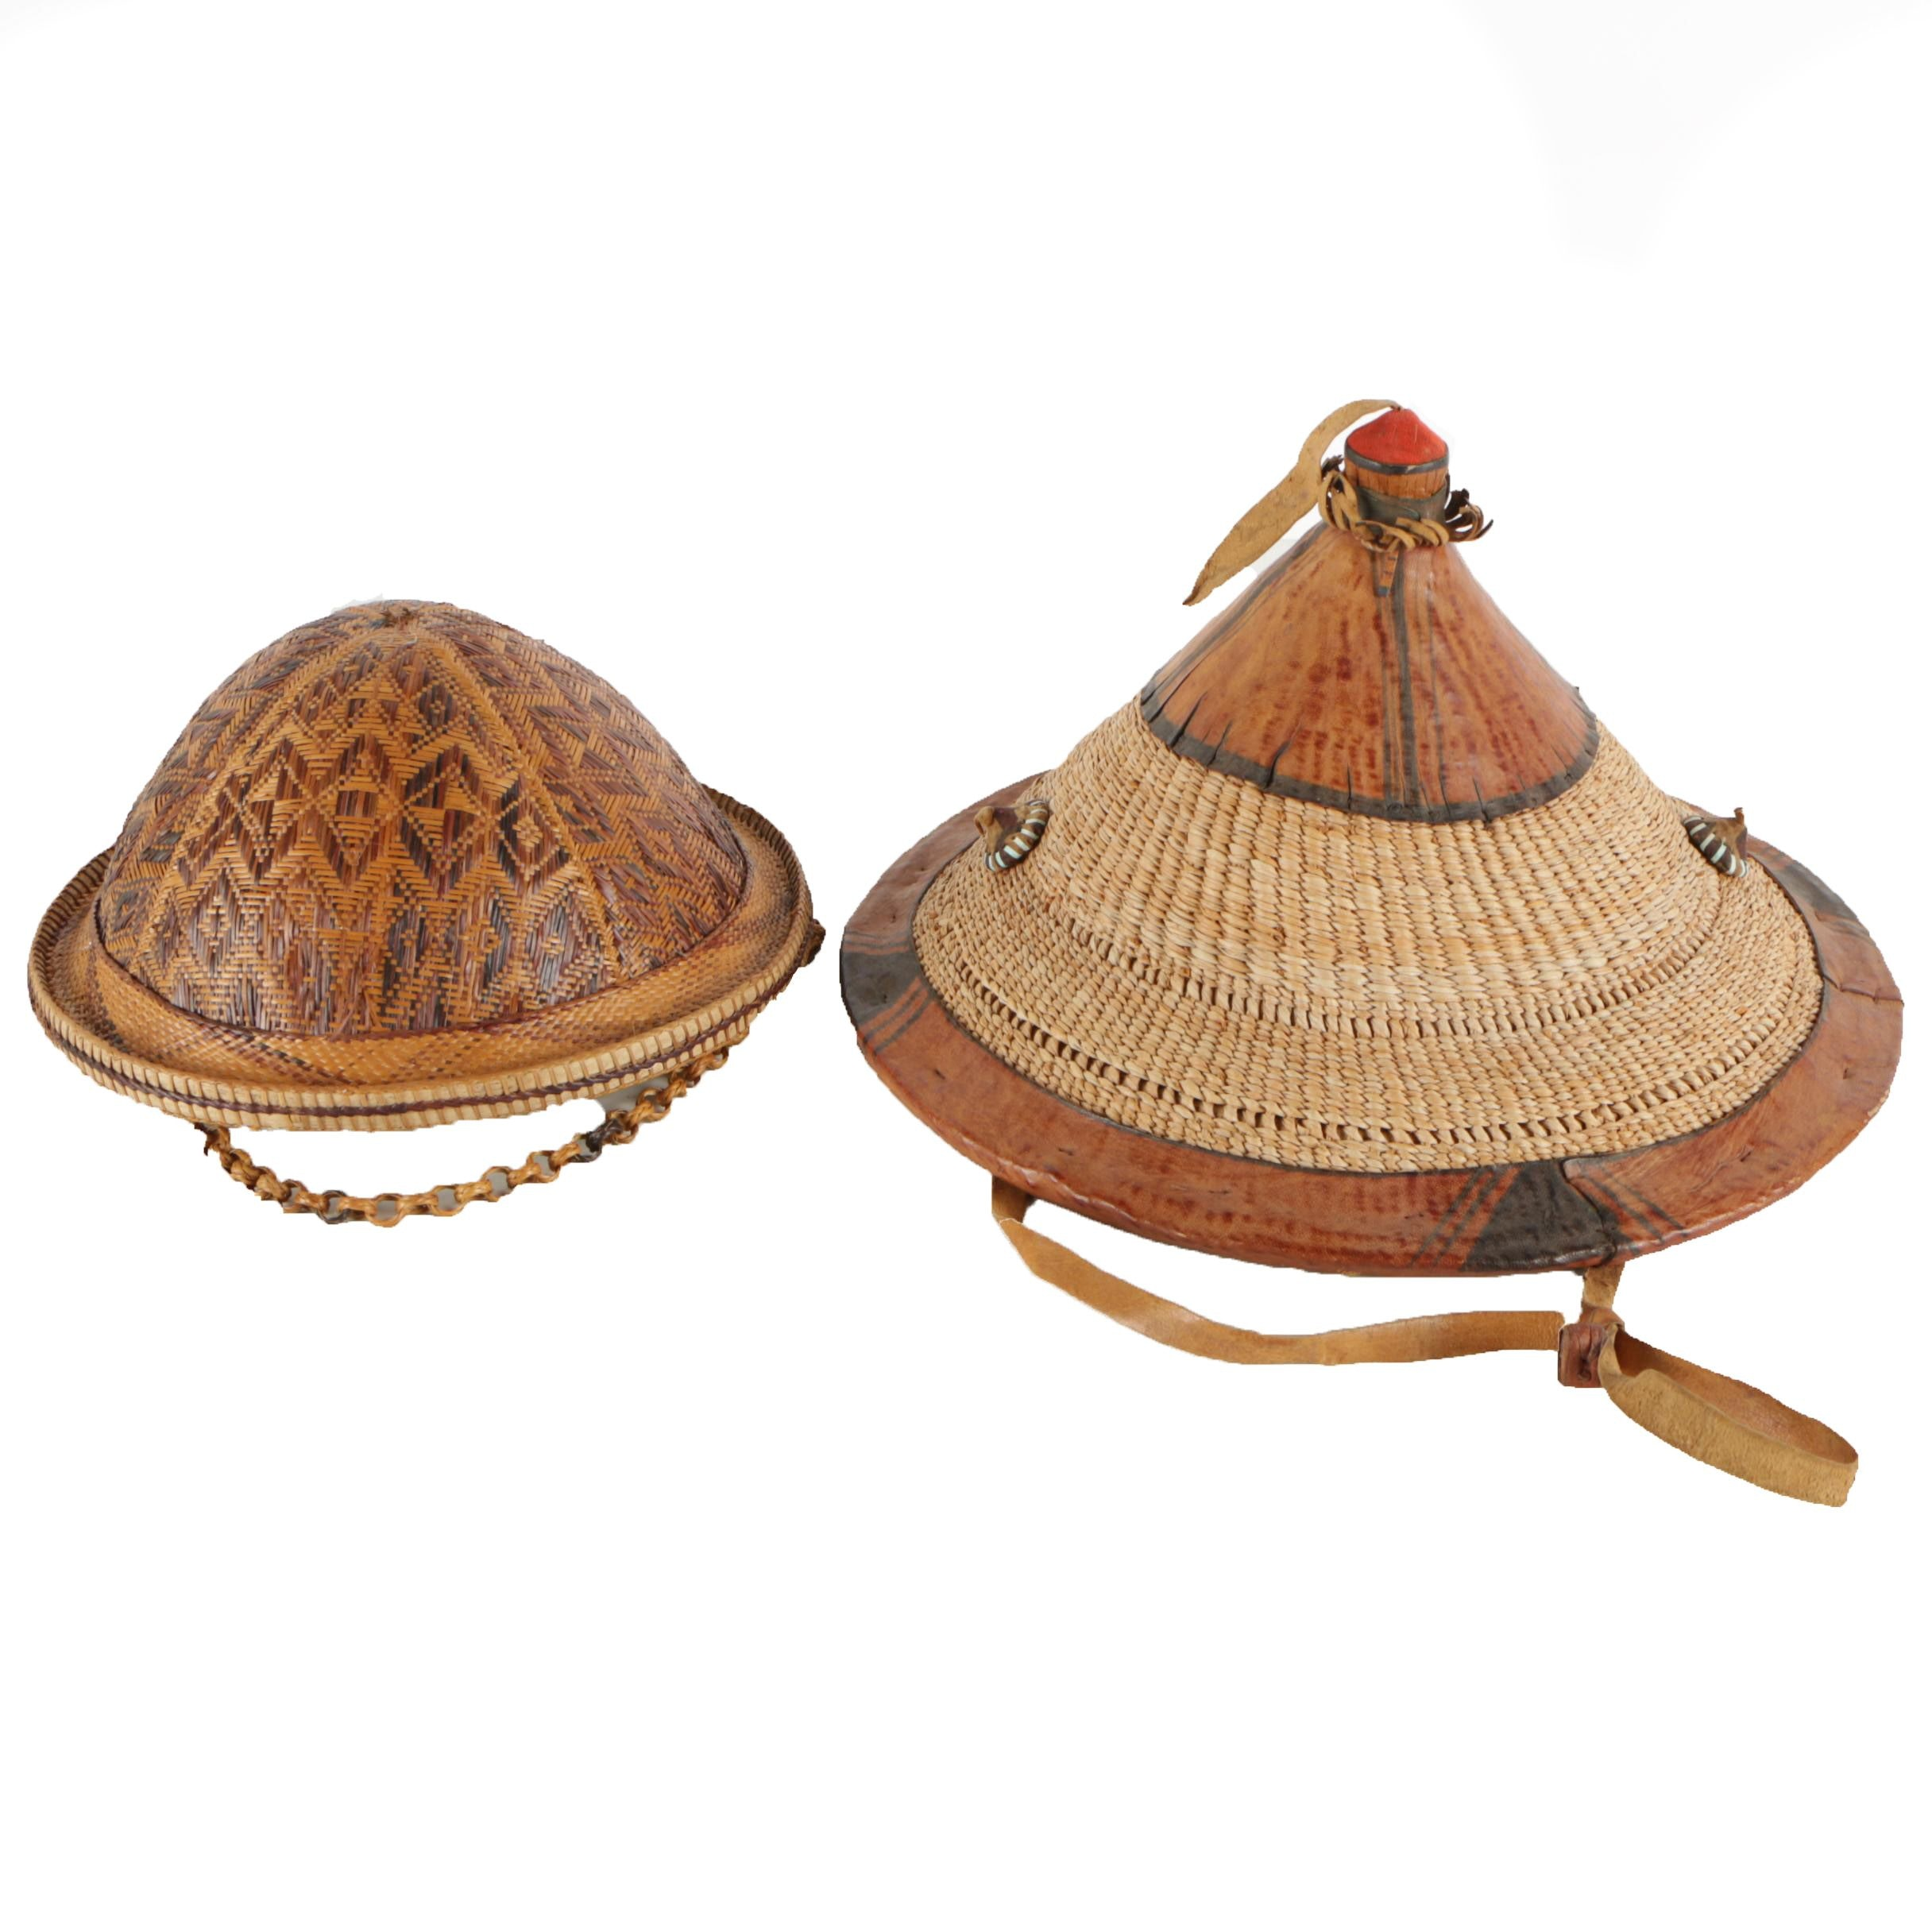 Southeast Asian Style Hats and Woven Domed Hat